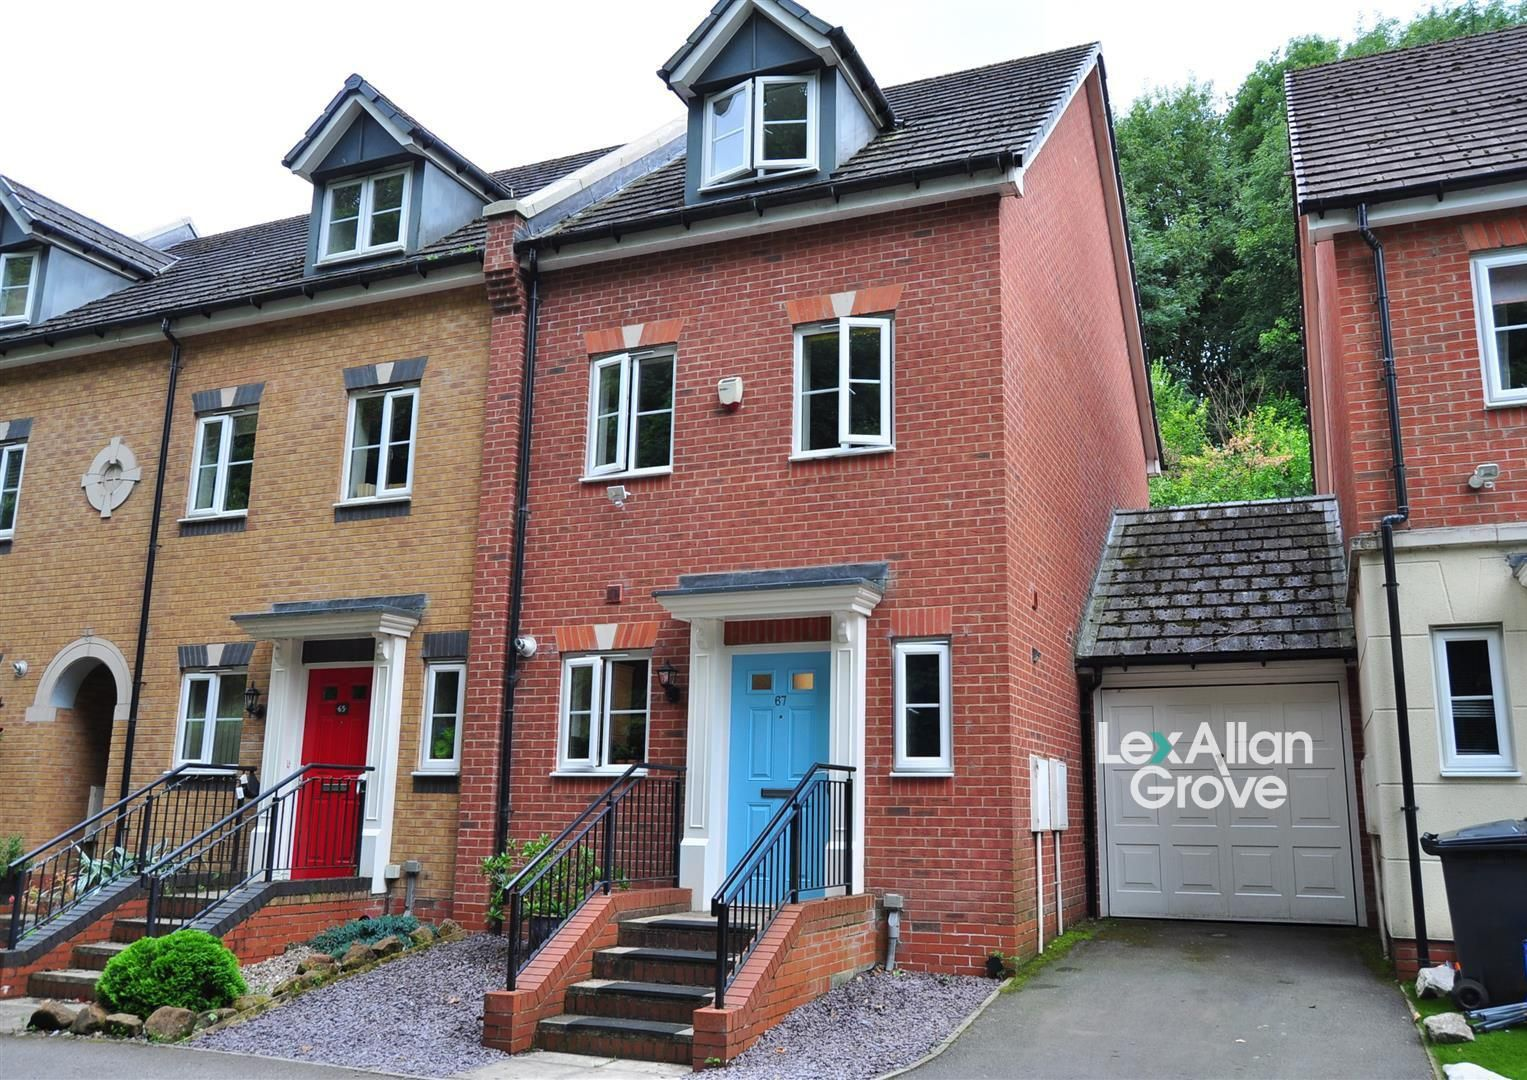 4 bed end-of-terrace for sale 1